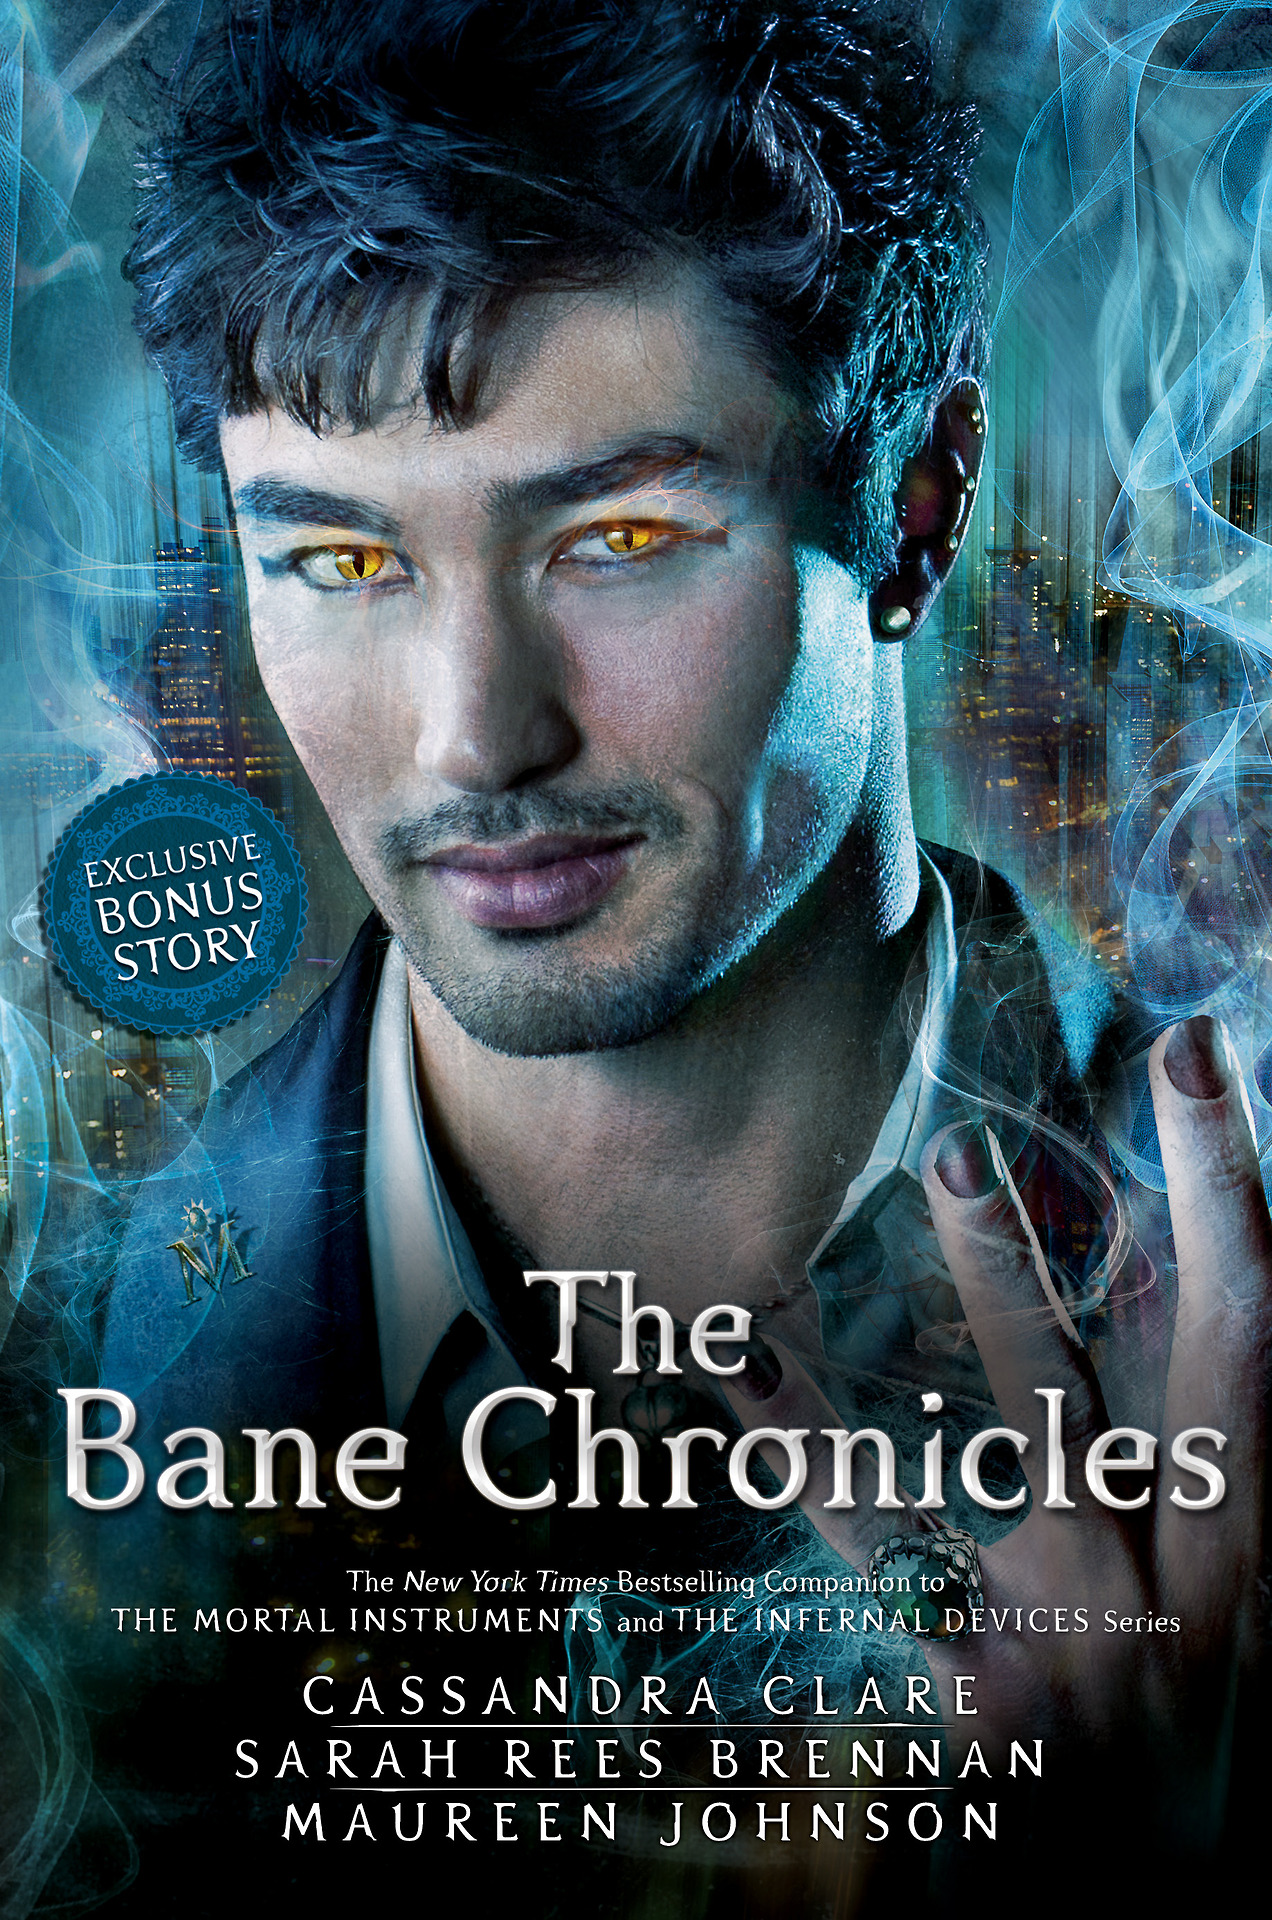 http://www.amazon.it/The-Bane-Chronicles-Cassandra-Clare/dp/1442495995/ref=tmm_hrd_title_1?ie=UTF8&qid=1435739666&sr=1-1